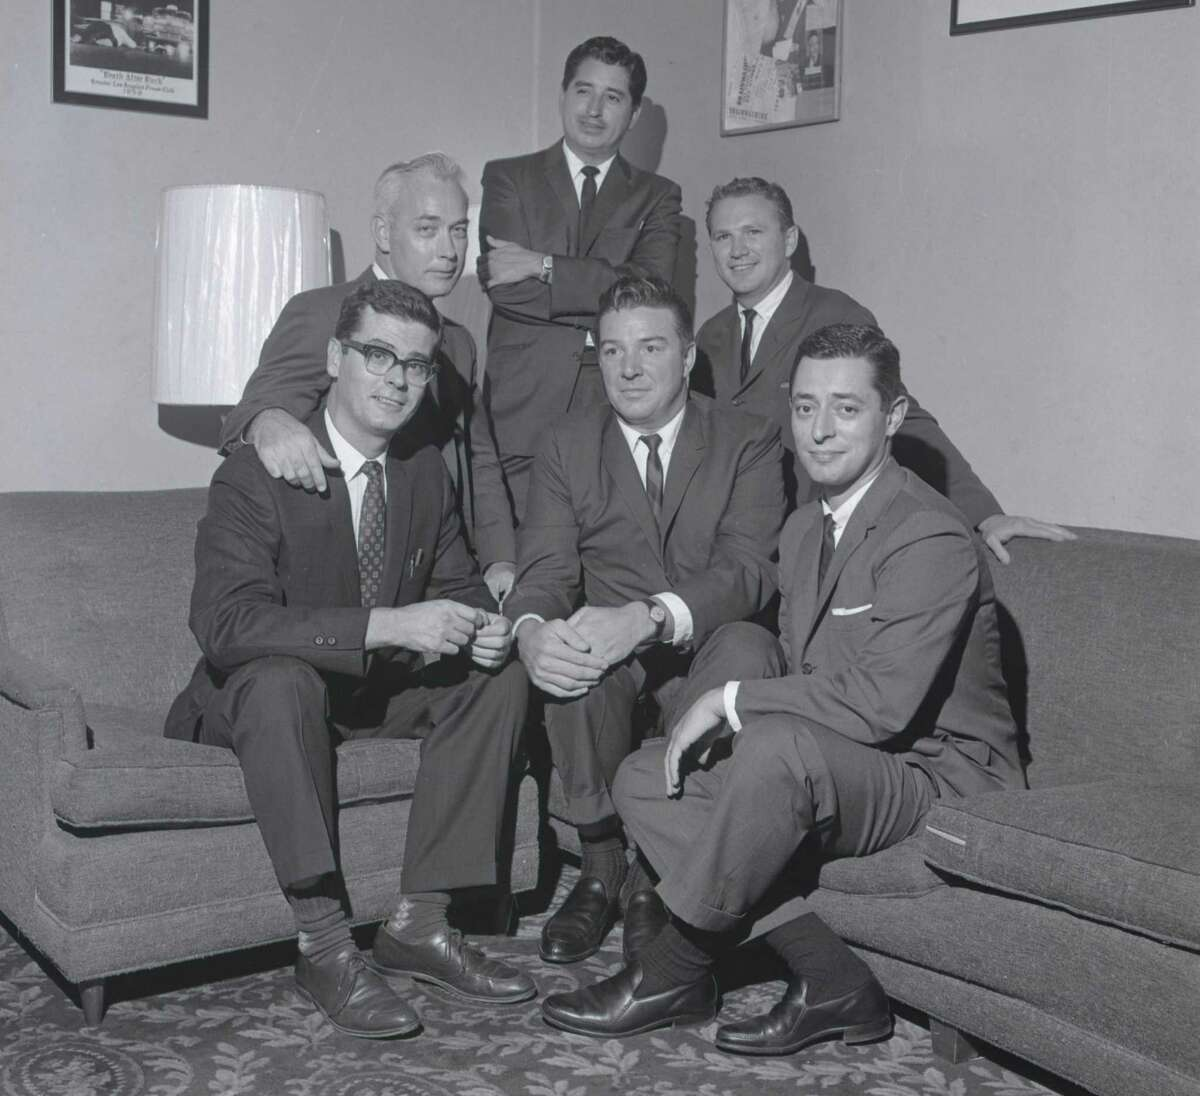 Ruben Salazar (standing) with his fellow Los Angeles Times reporters in the 1960s. Salazar's death in 1970 is profiled in a PBS documentary